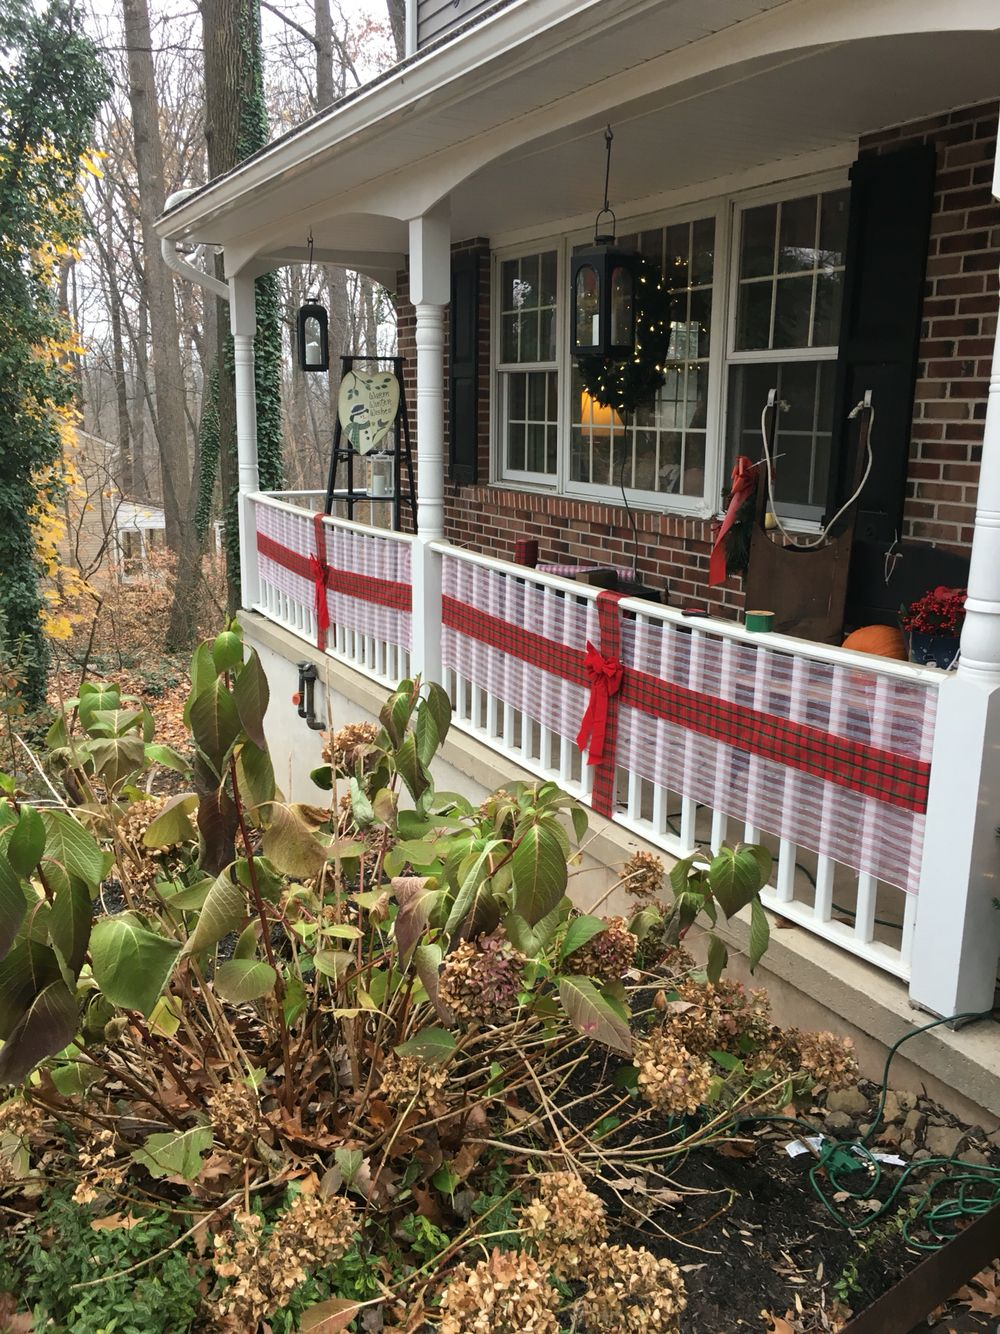 Use Decorative Mesh And Plaid Ribbon To Make Your Front Porch Railing Look Like A Wrapped Present Christmas Porch Front Porch Railings Exterior Decor